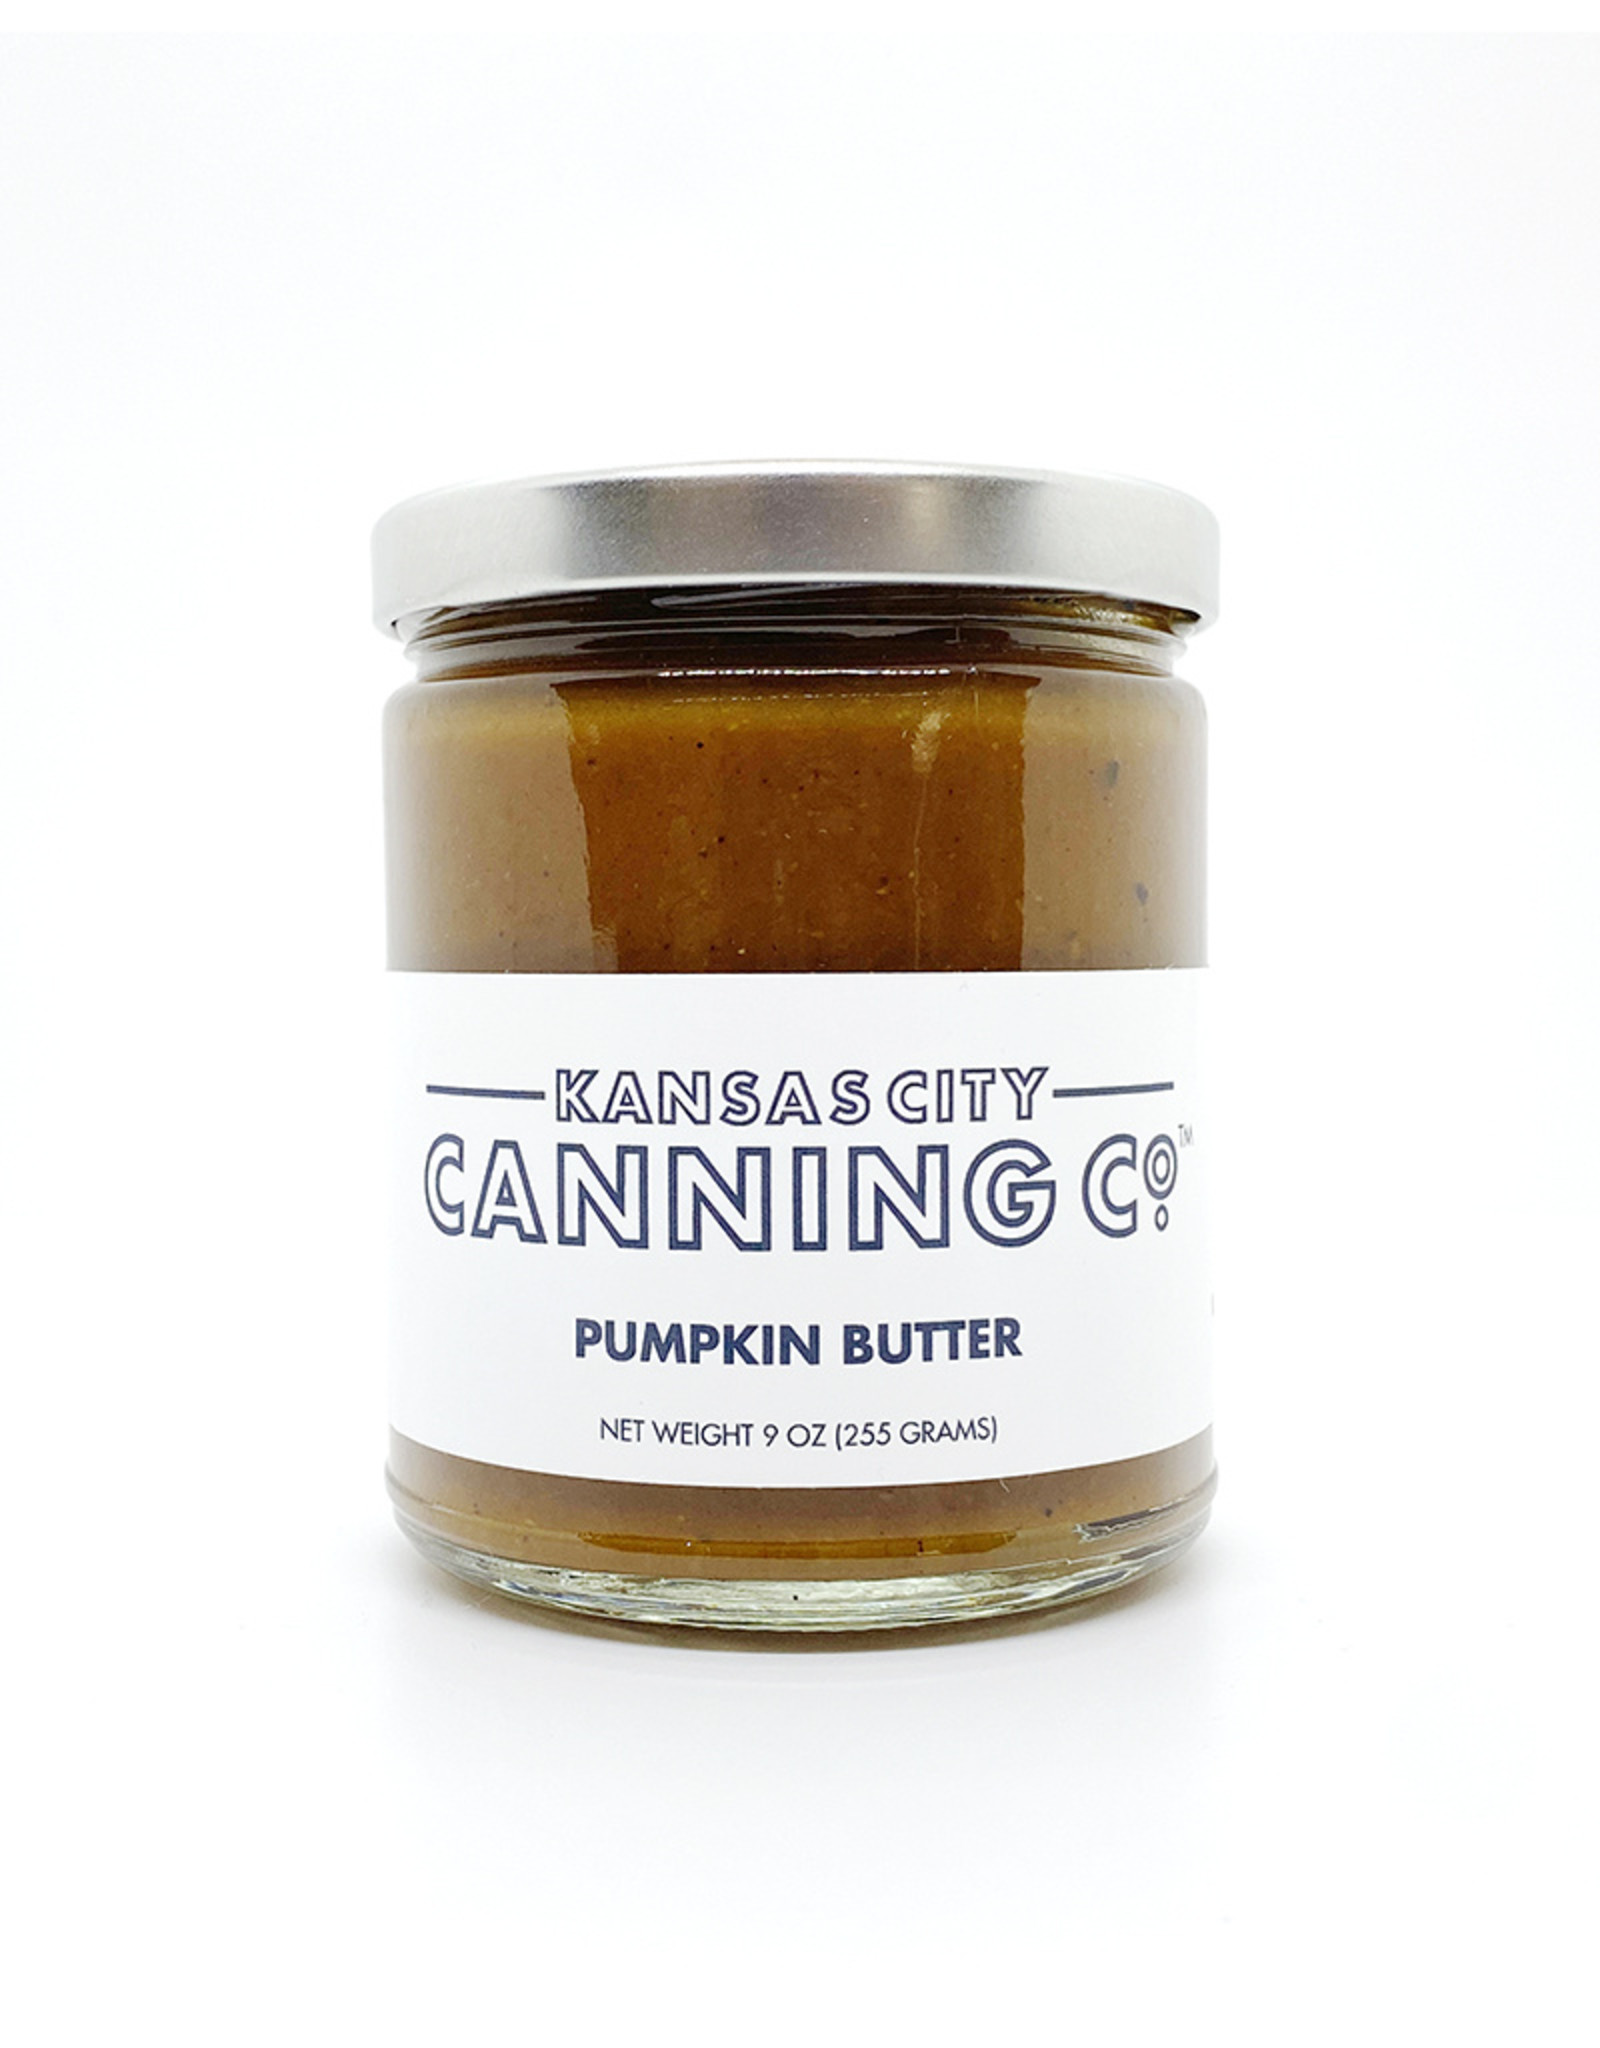 Kansas City Canning Co. Pumpkin Butter by Kansas City Canning Co.